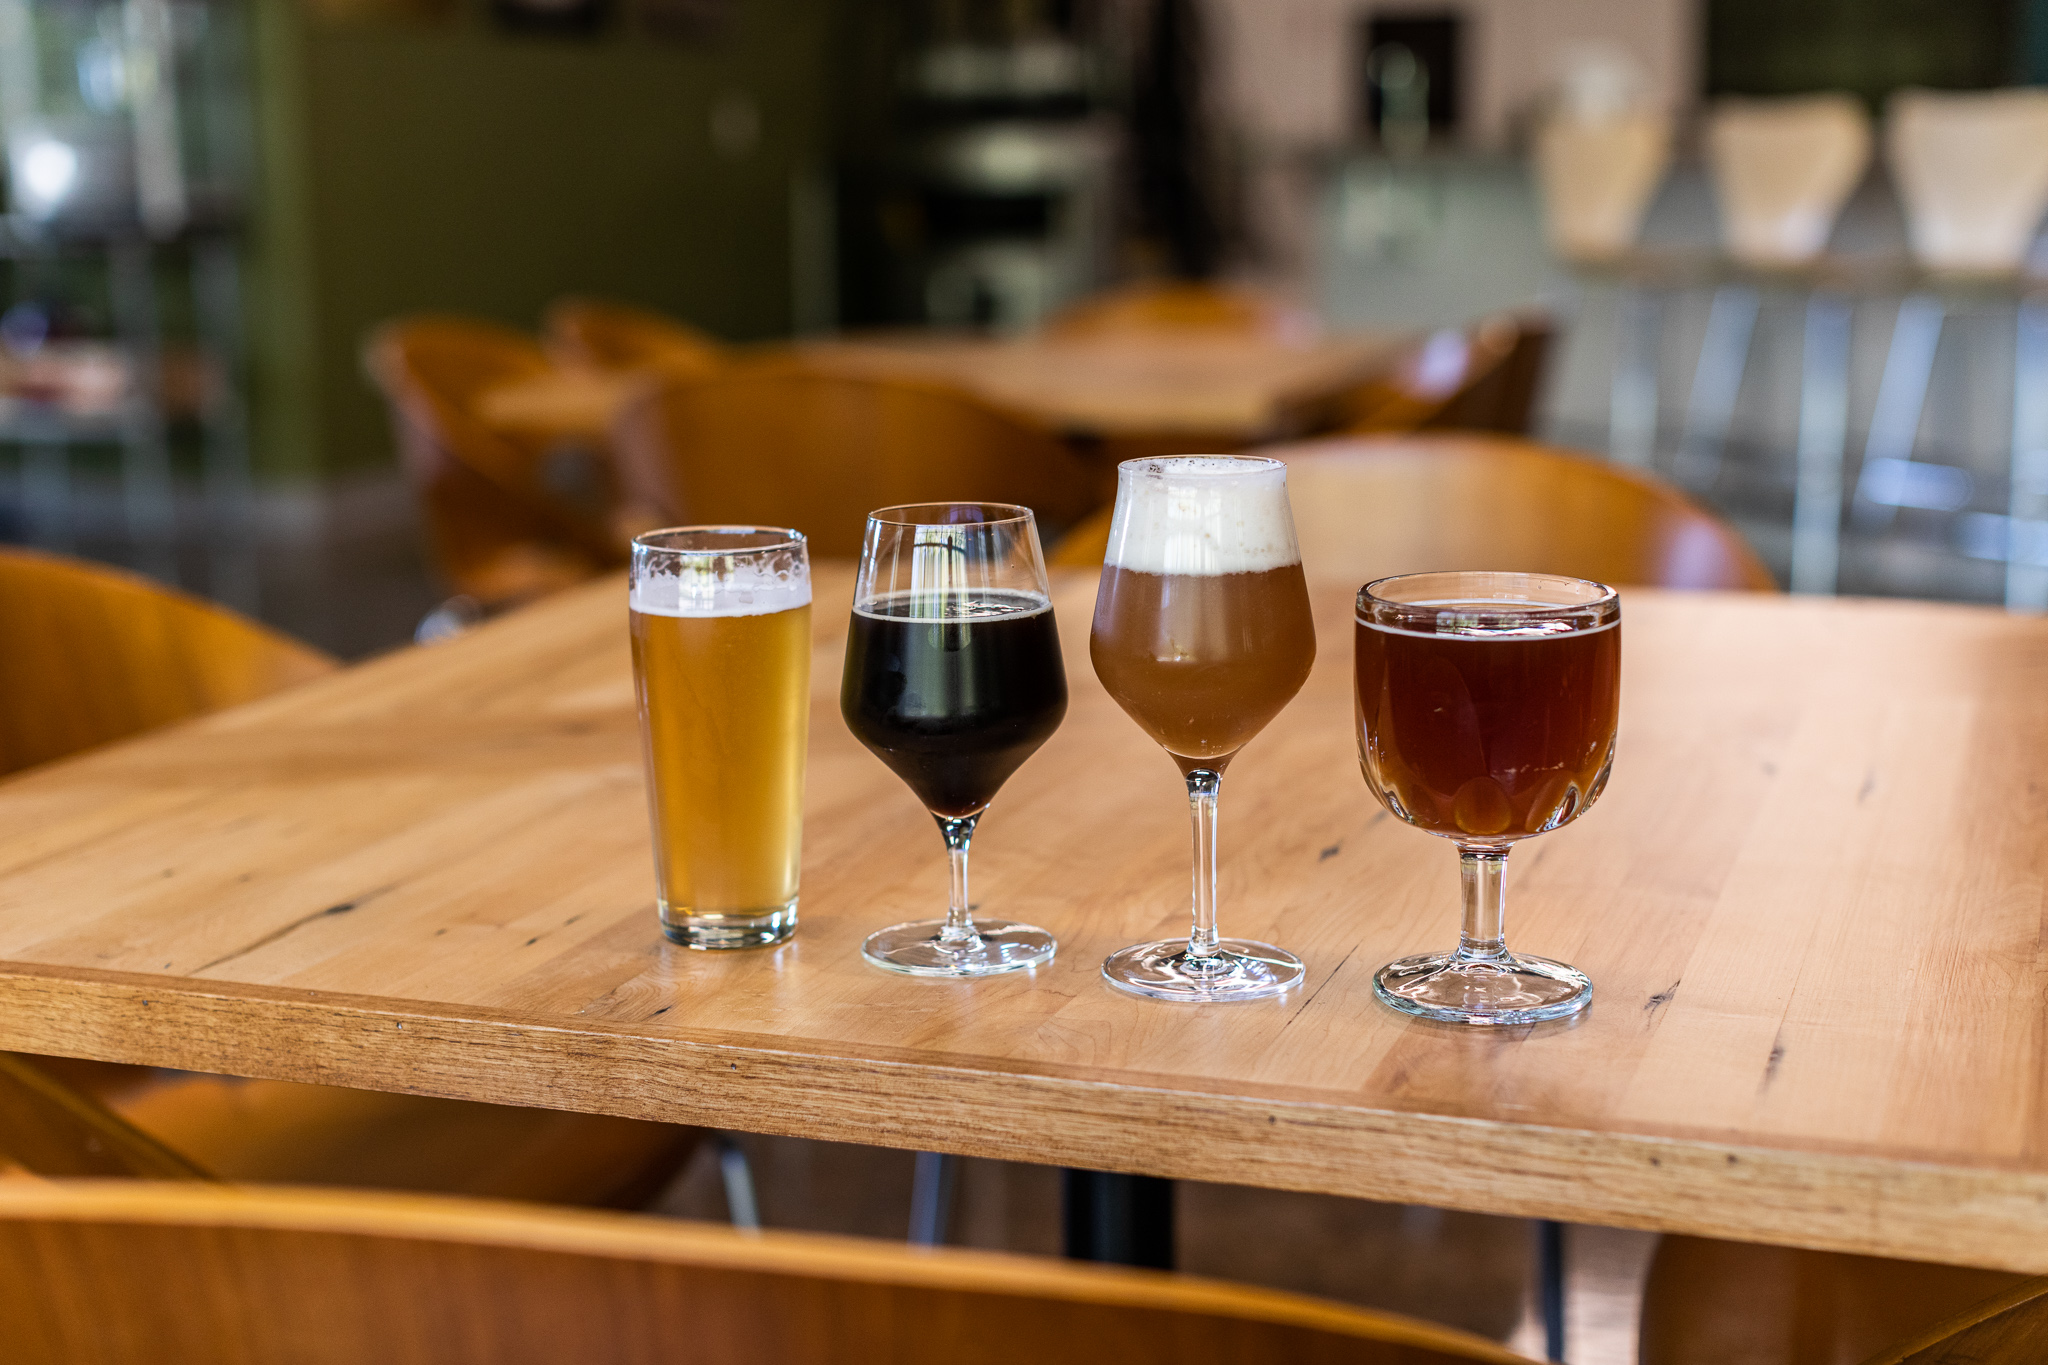 A light-colored beer in a pint glass, a dark stout in a stemmed glass, a taller stemmed glass with a slightly lighter cloudy beer and lots of head, and a brown beer with no head in a goblet-style glass. All four sit on a wooden table.